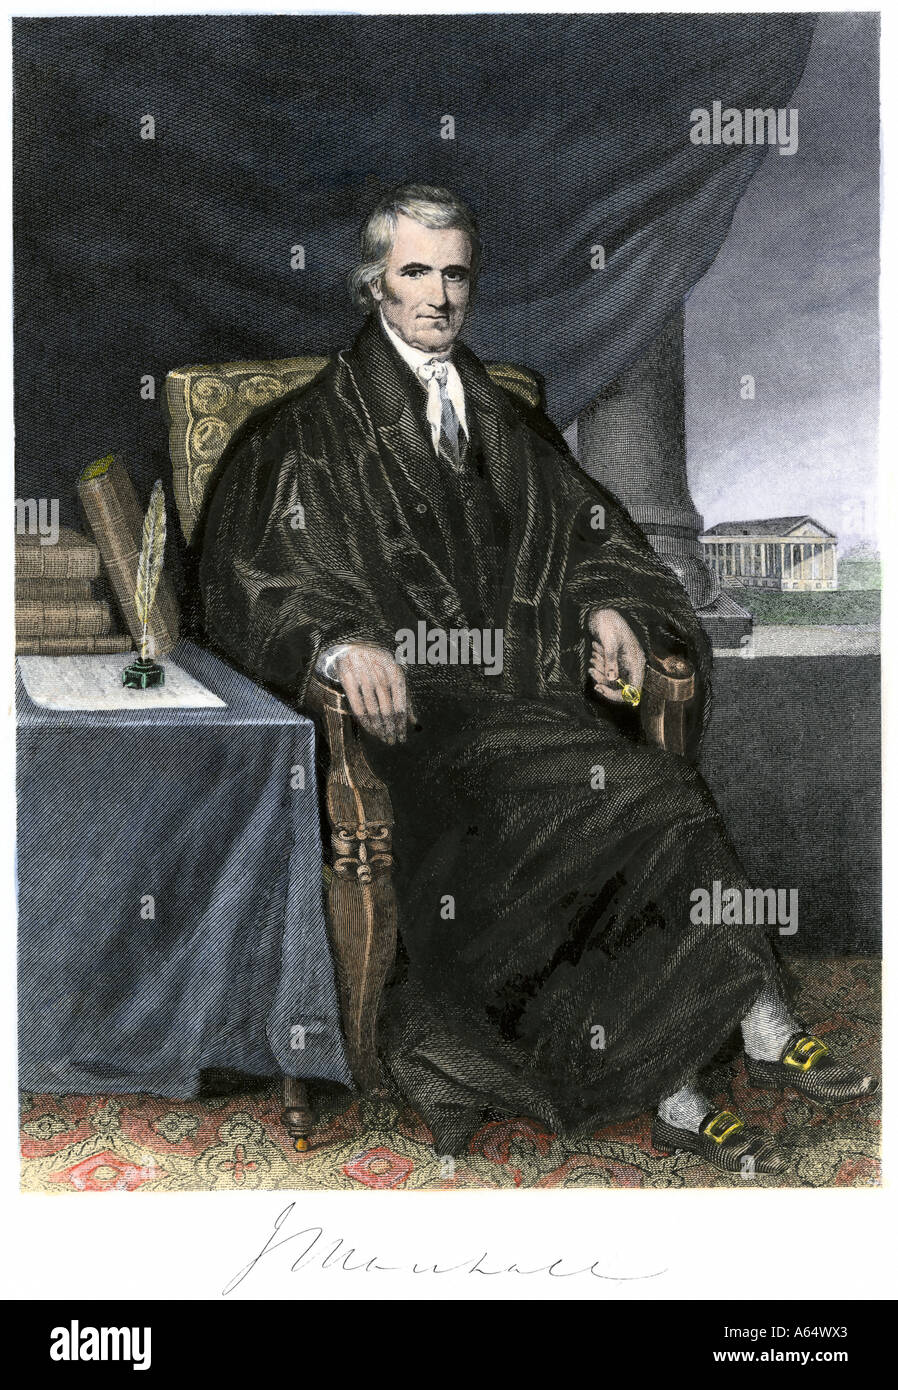 John Marshall Chief Justice of the United States Supreme Court 1800s. Hand-colored steel engraving Stock Photo